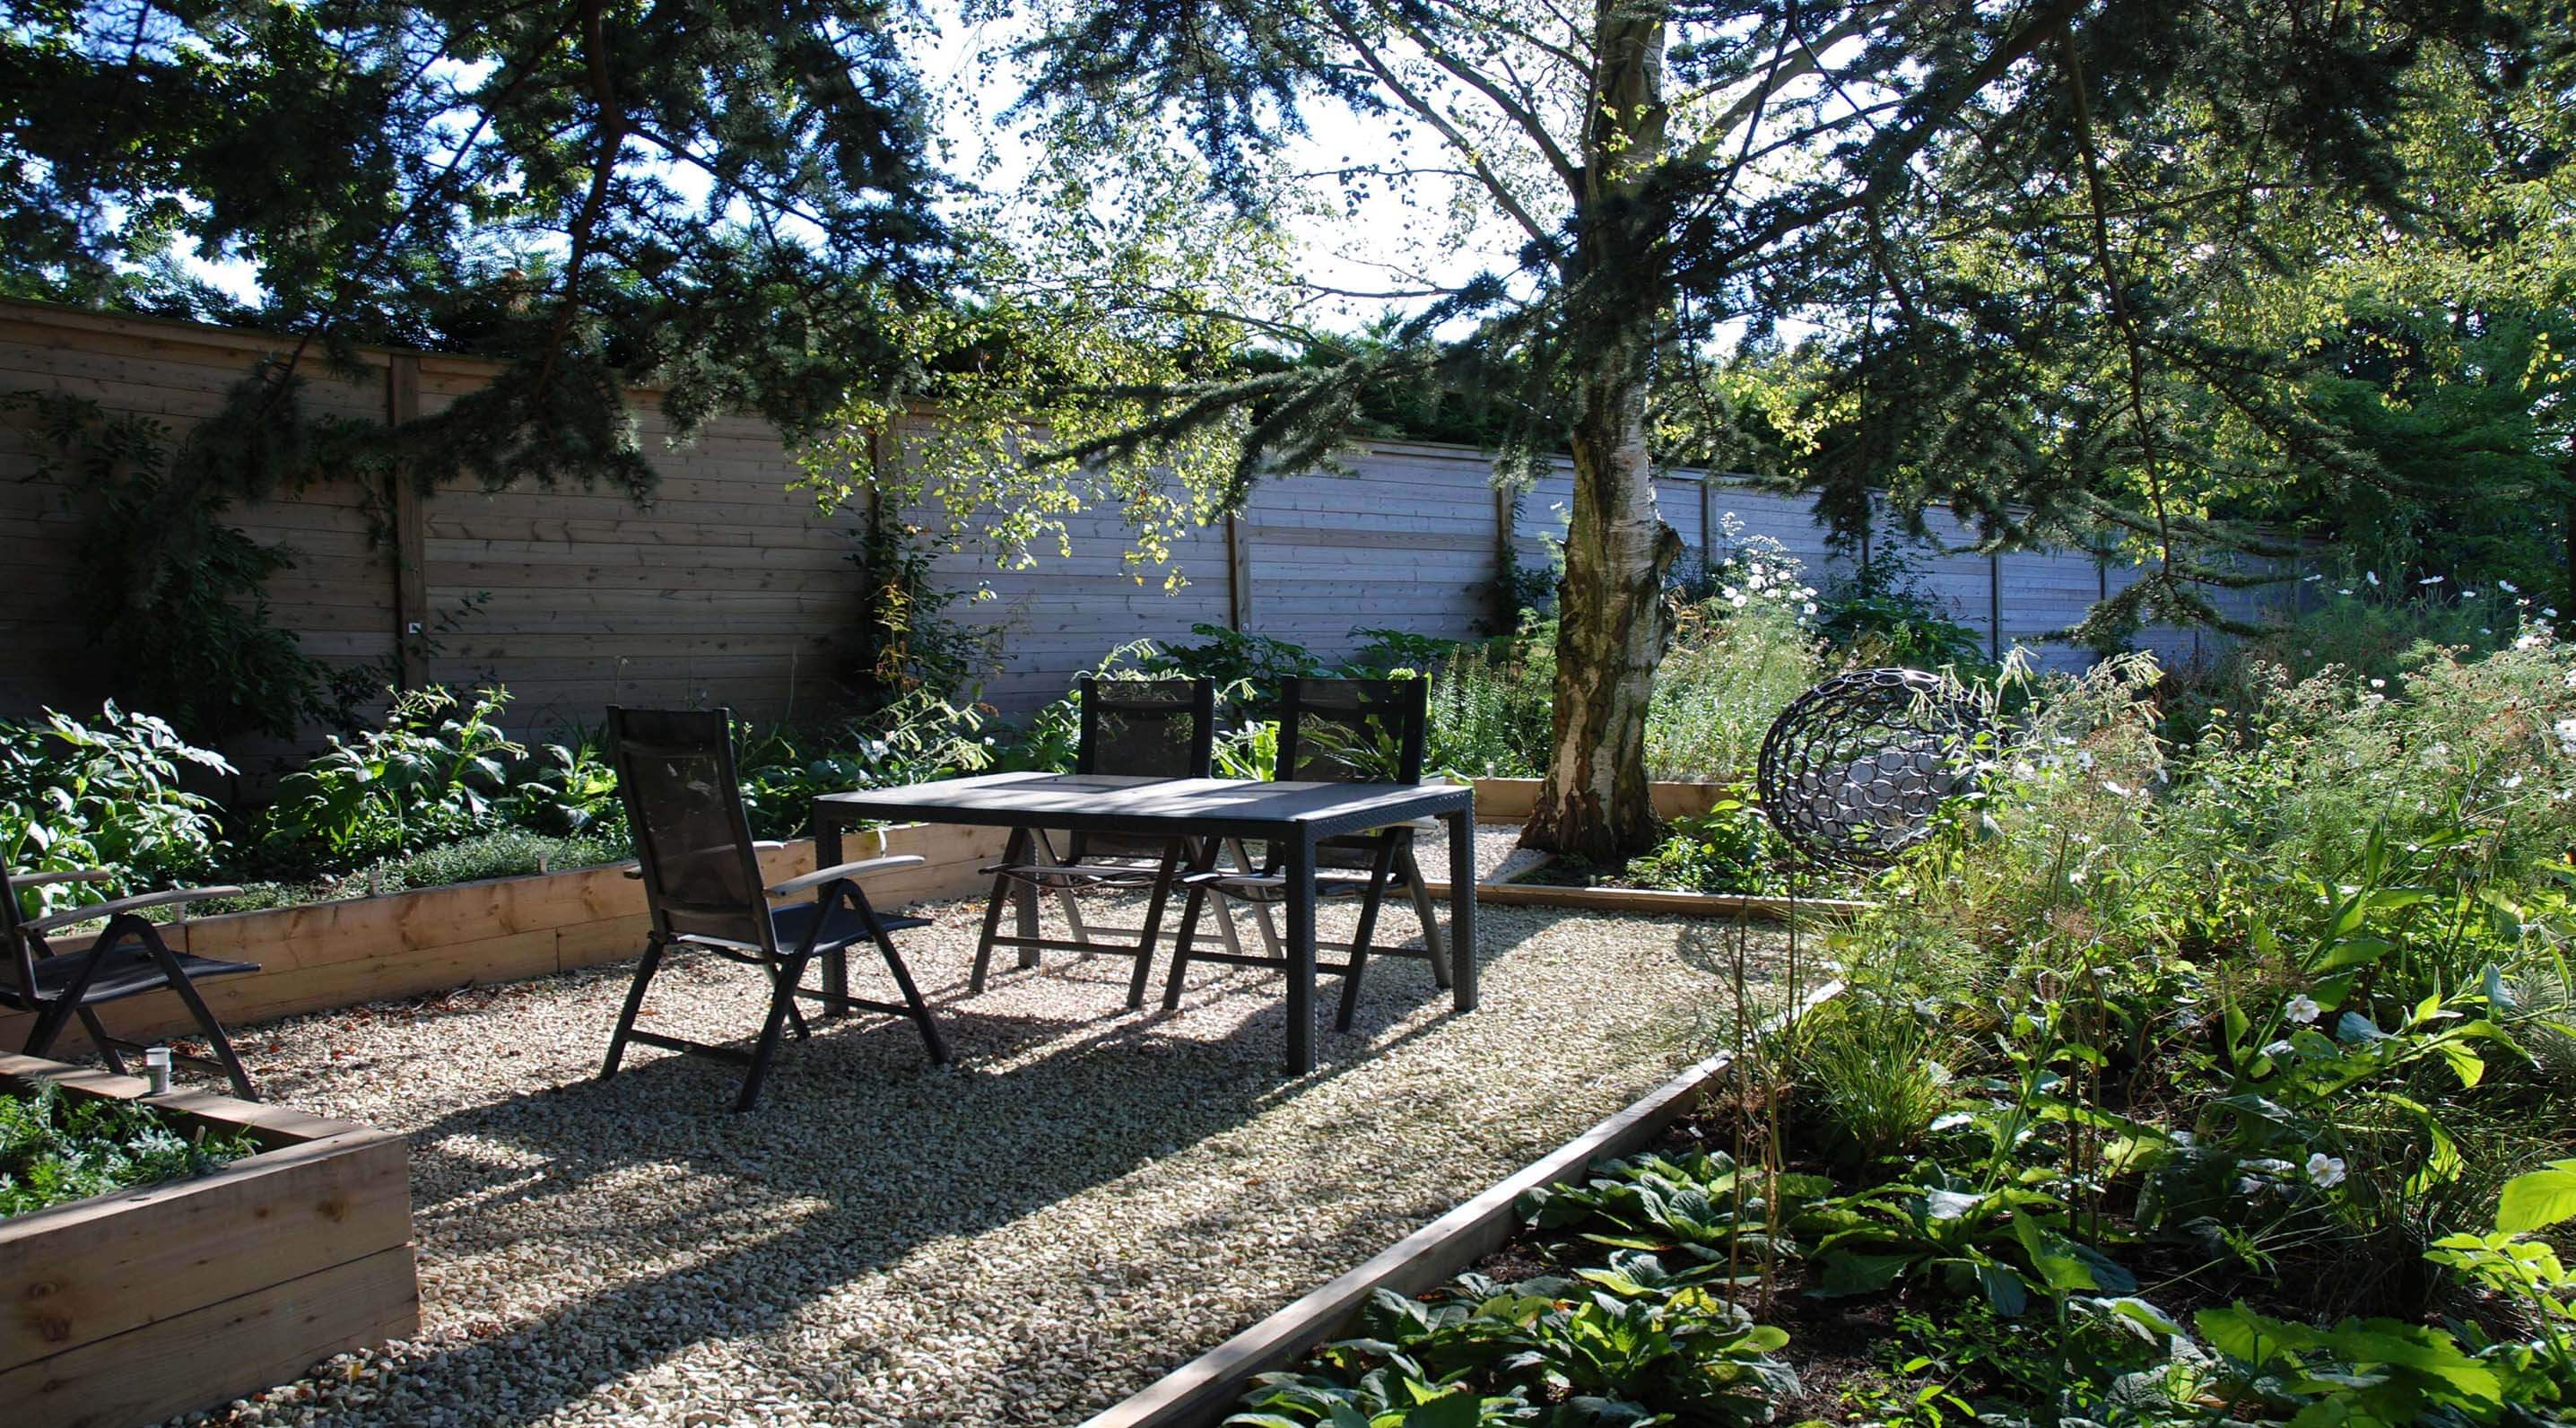 New seating area with Jakoustic fencing panel sleeper garden design